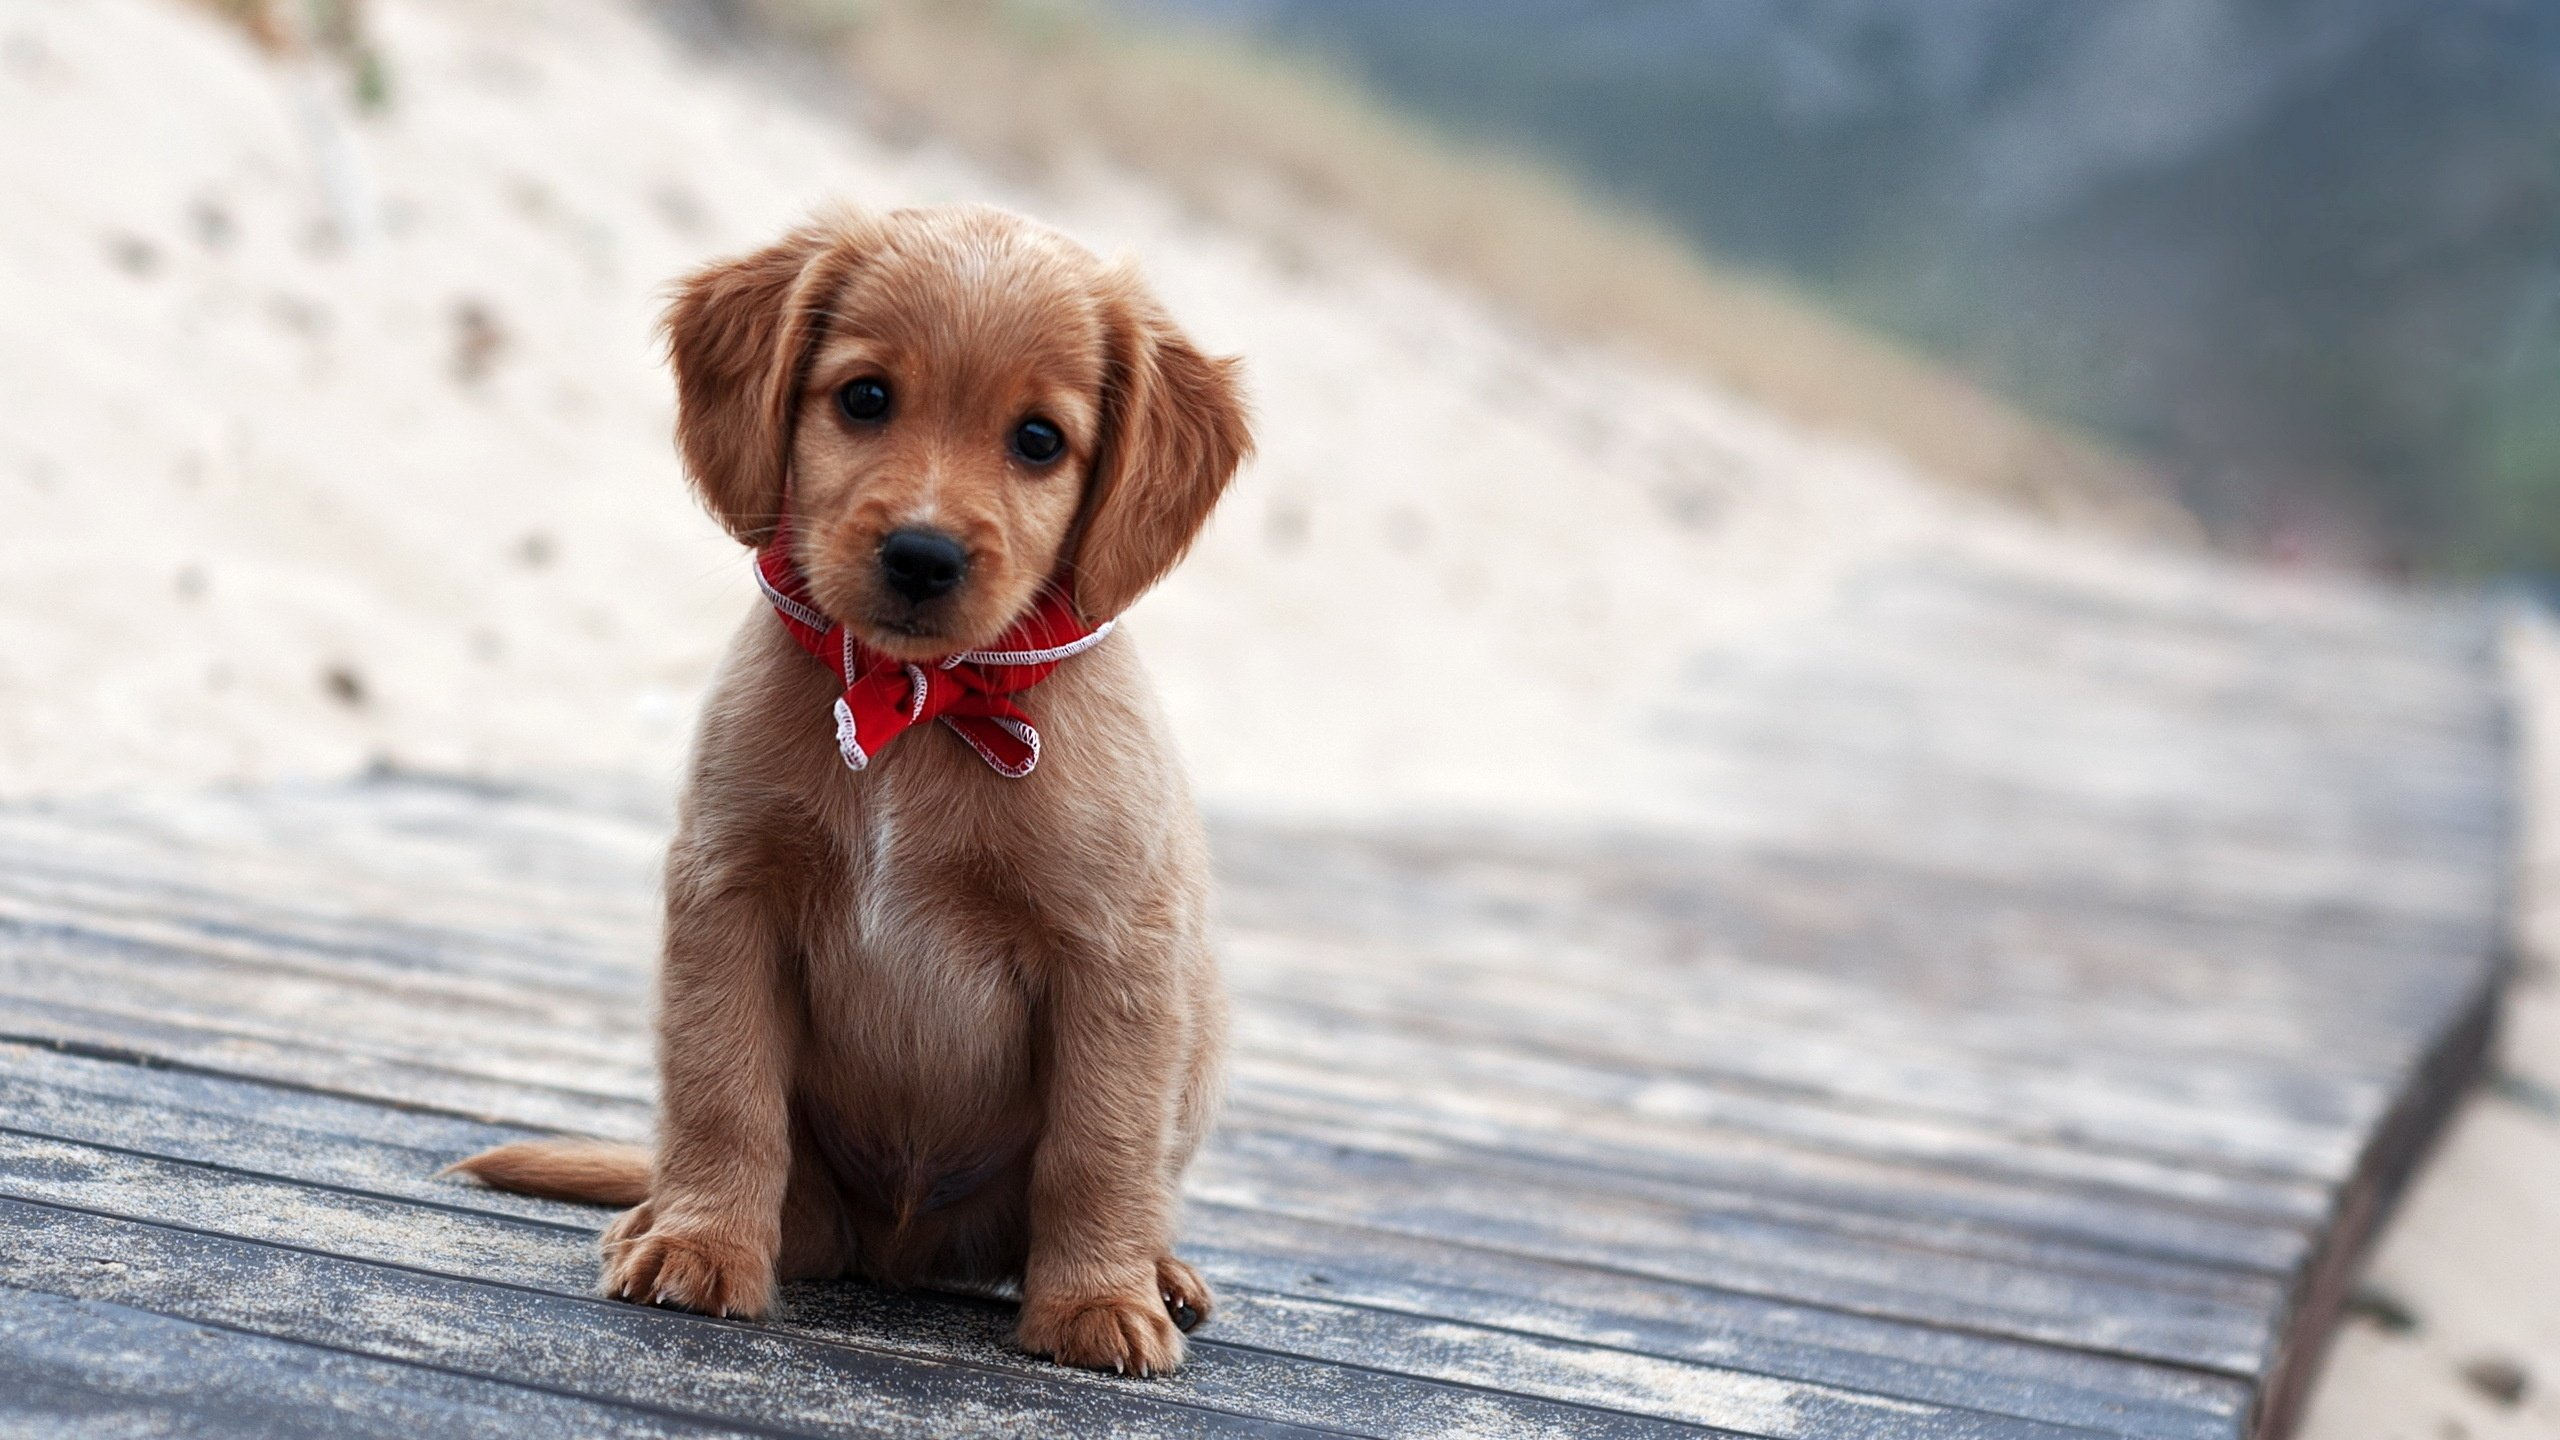 Cute Wallpapers Puppies Posted By Christopher Anderson